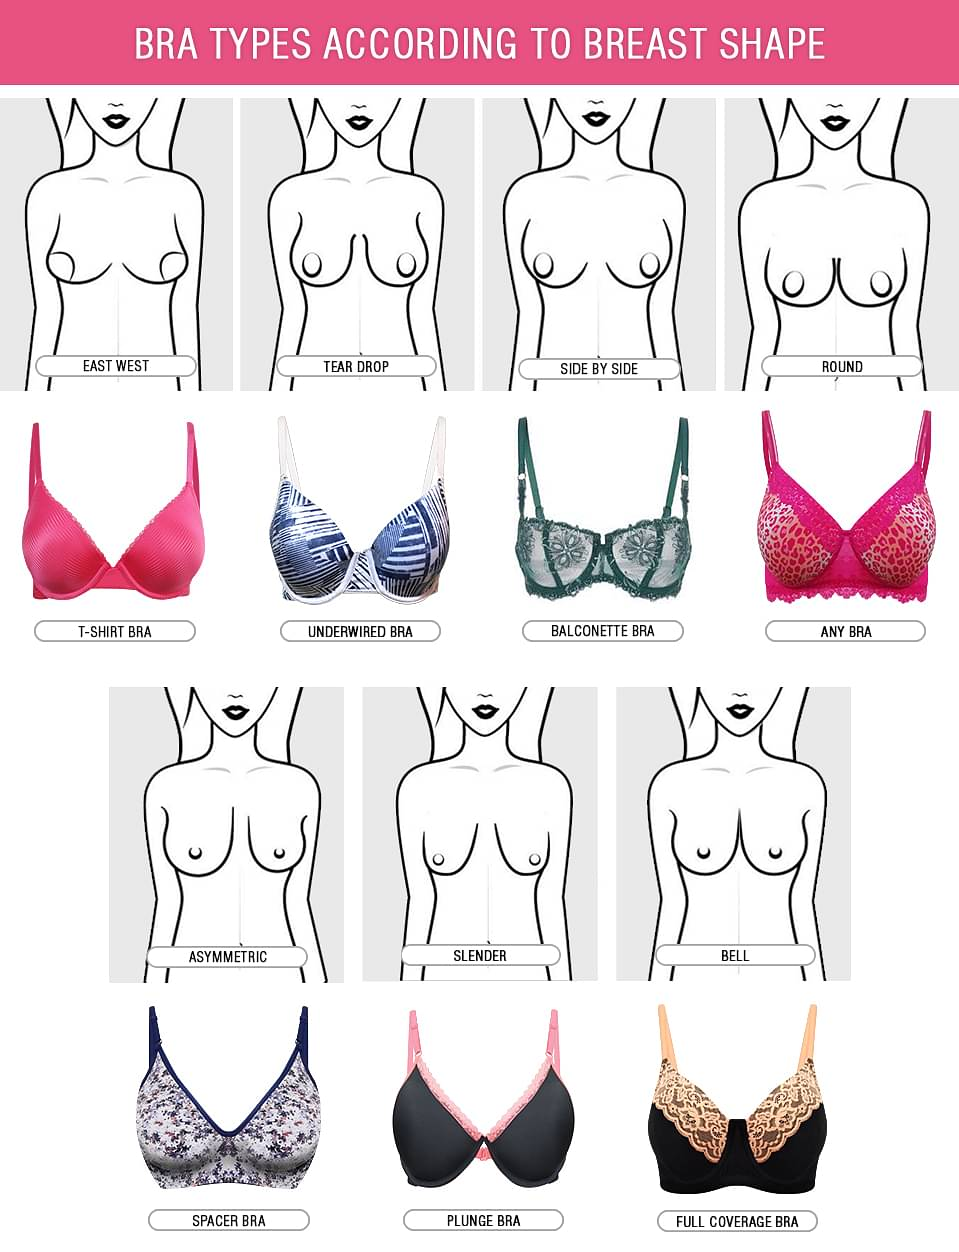 Bra Types According to Breast Shape